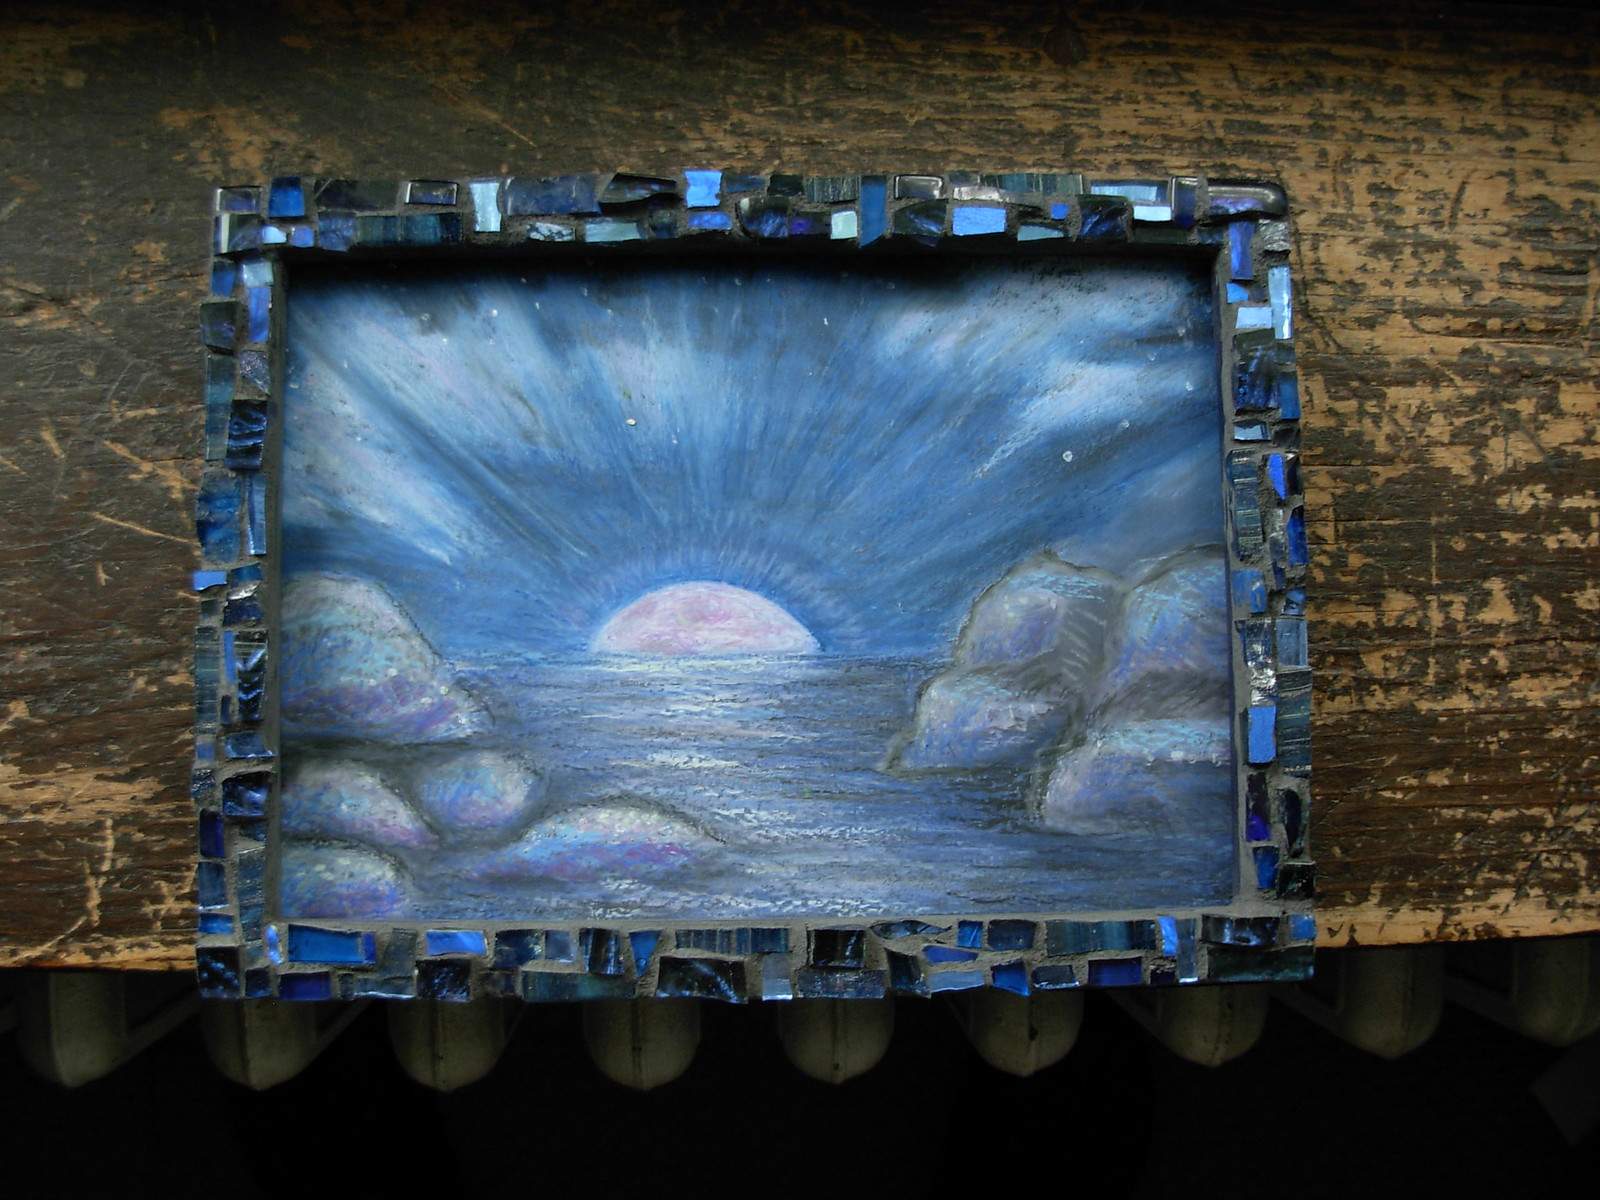 Moon Glow Oil Pastel by Suzanne Halstead and Mosaic Frame by Margaret Almon